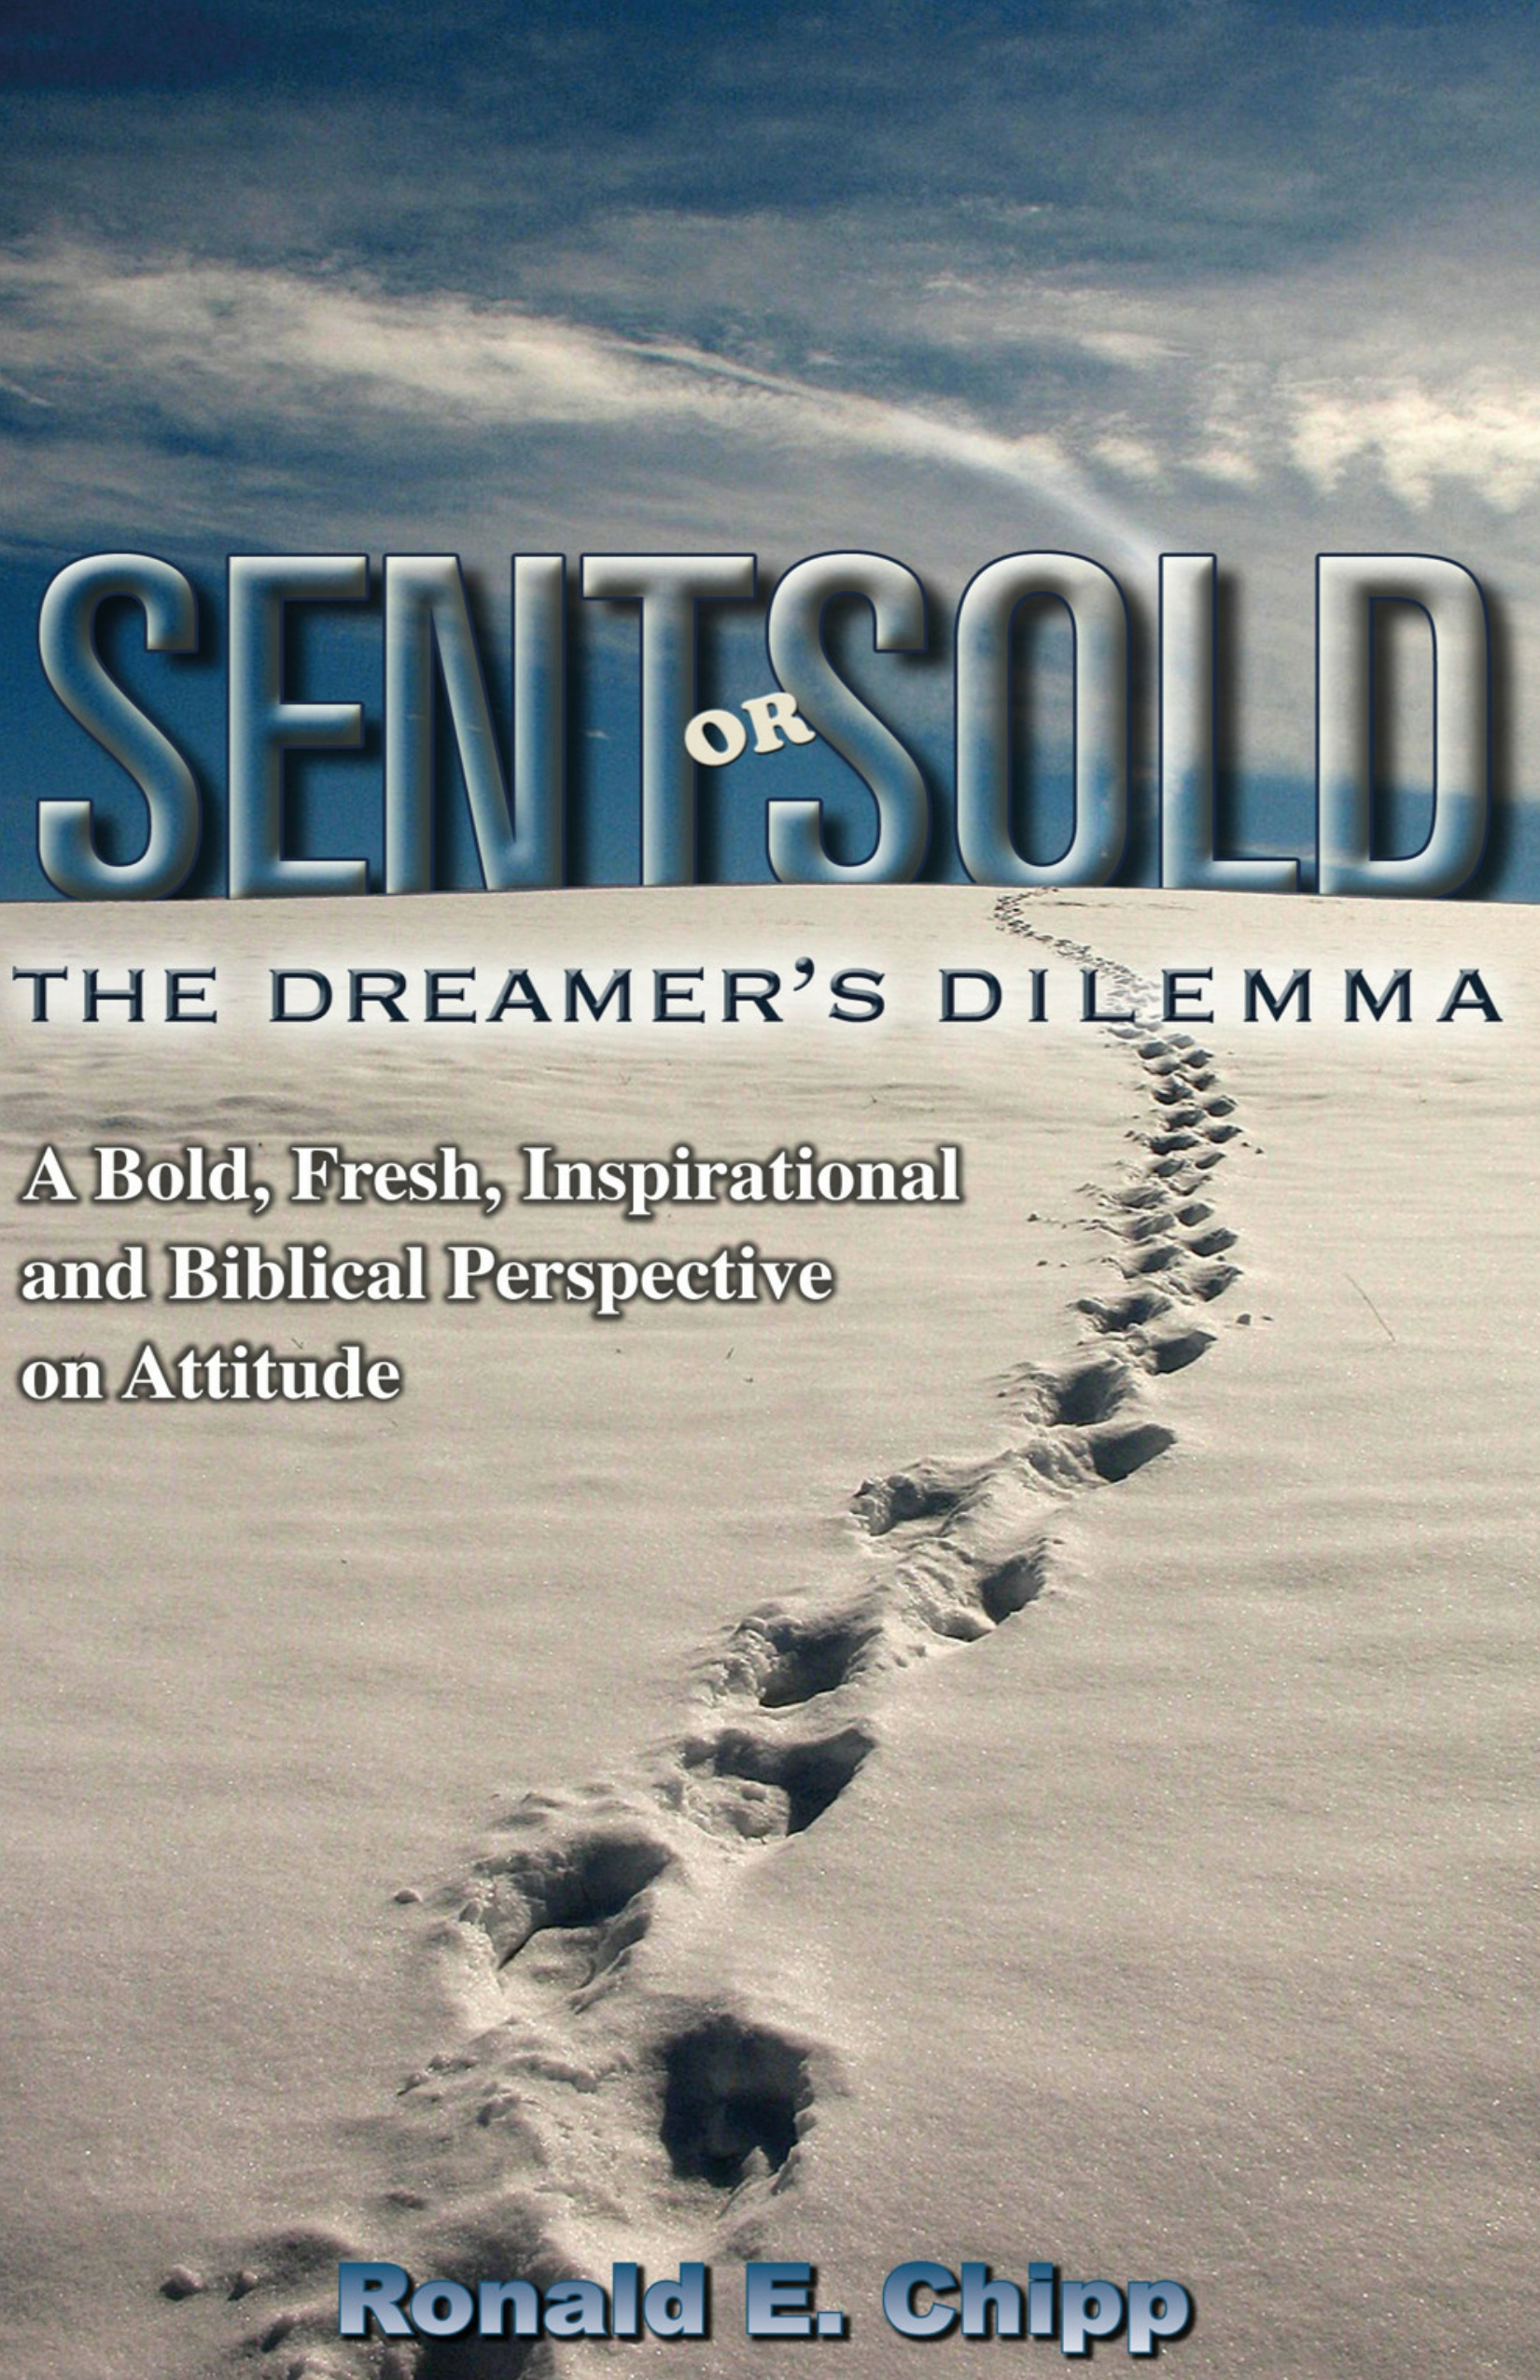 SENT OR SOLD: The Dreamer's Dilemma